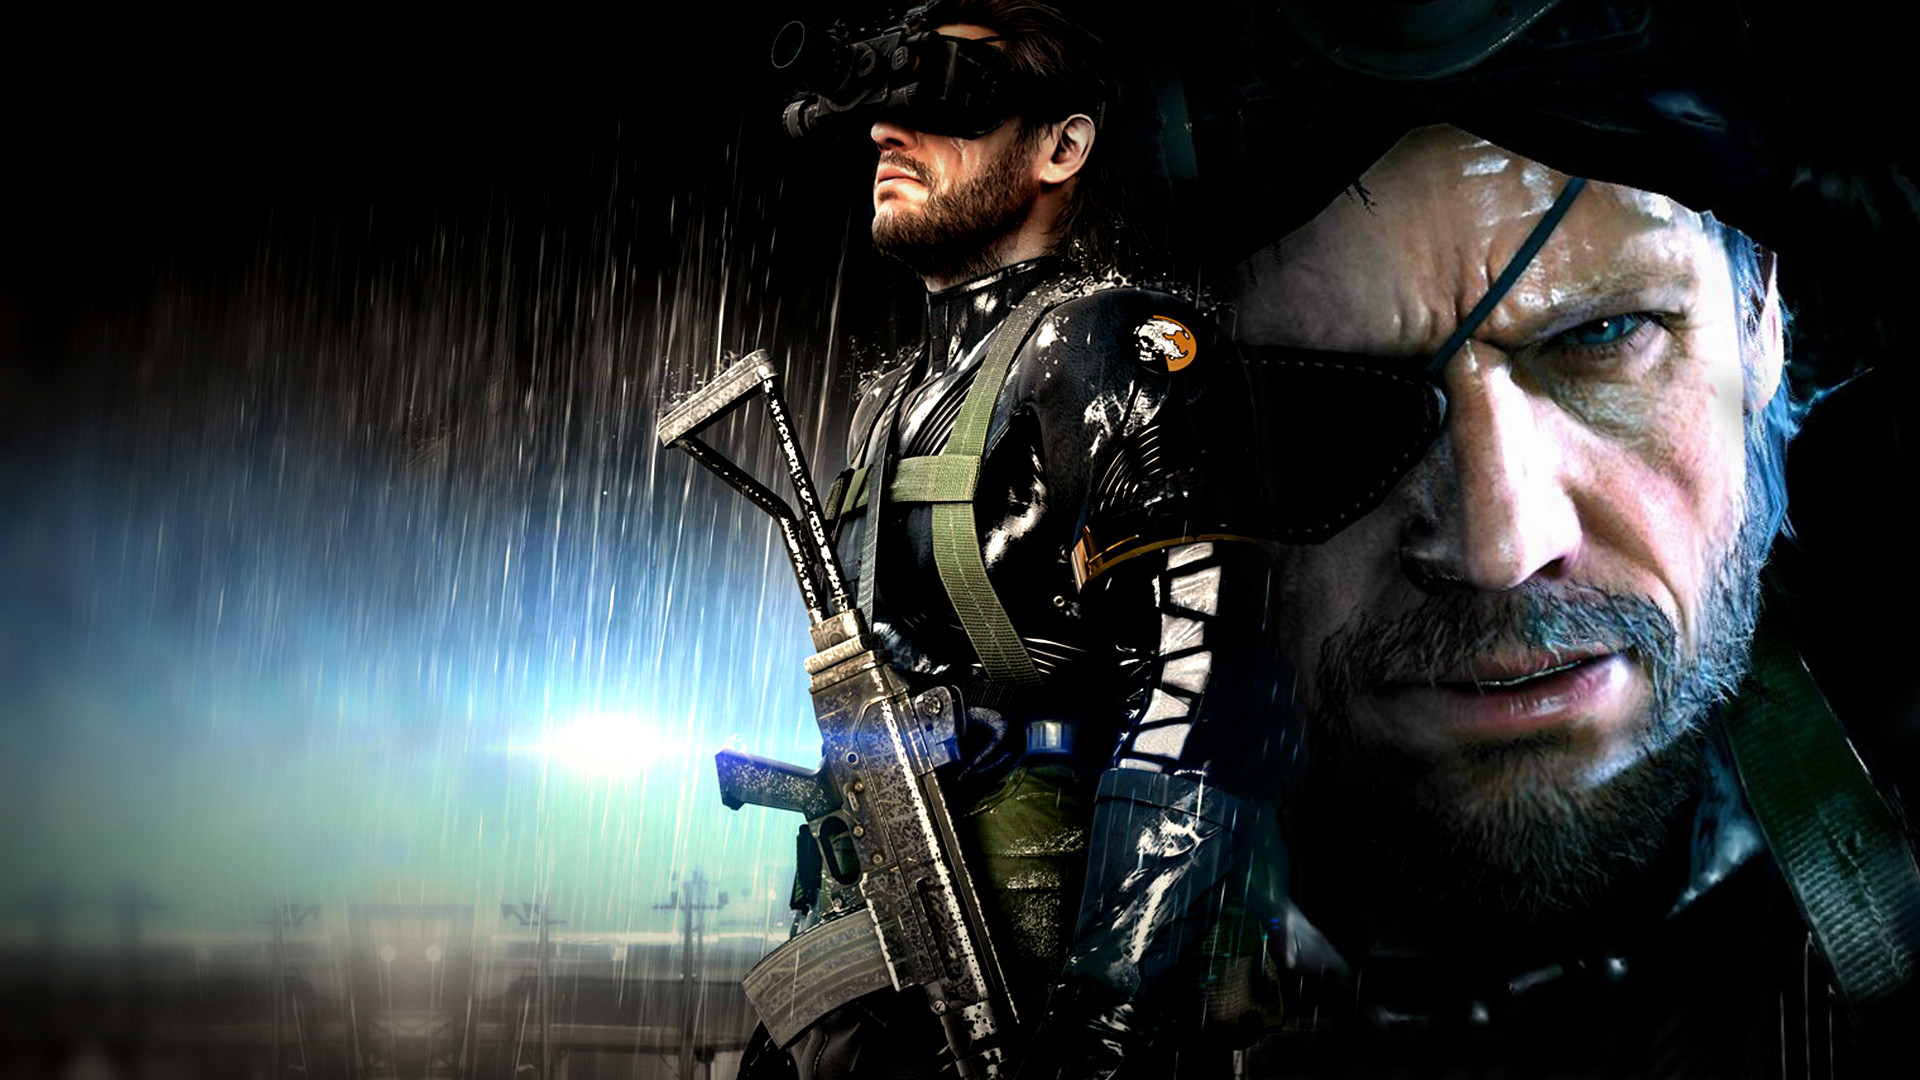 50 Metal Gear Solid HD Wallpapers | Backgrounds – Wallpaper Abyss – Page 2